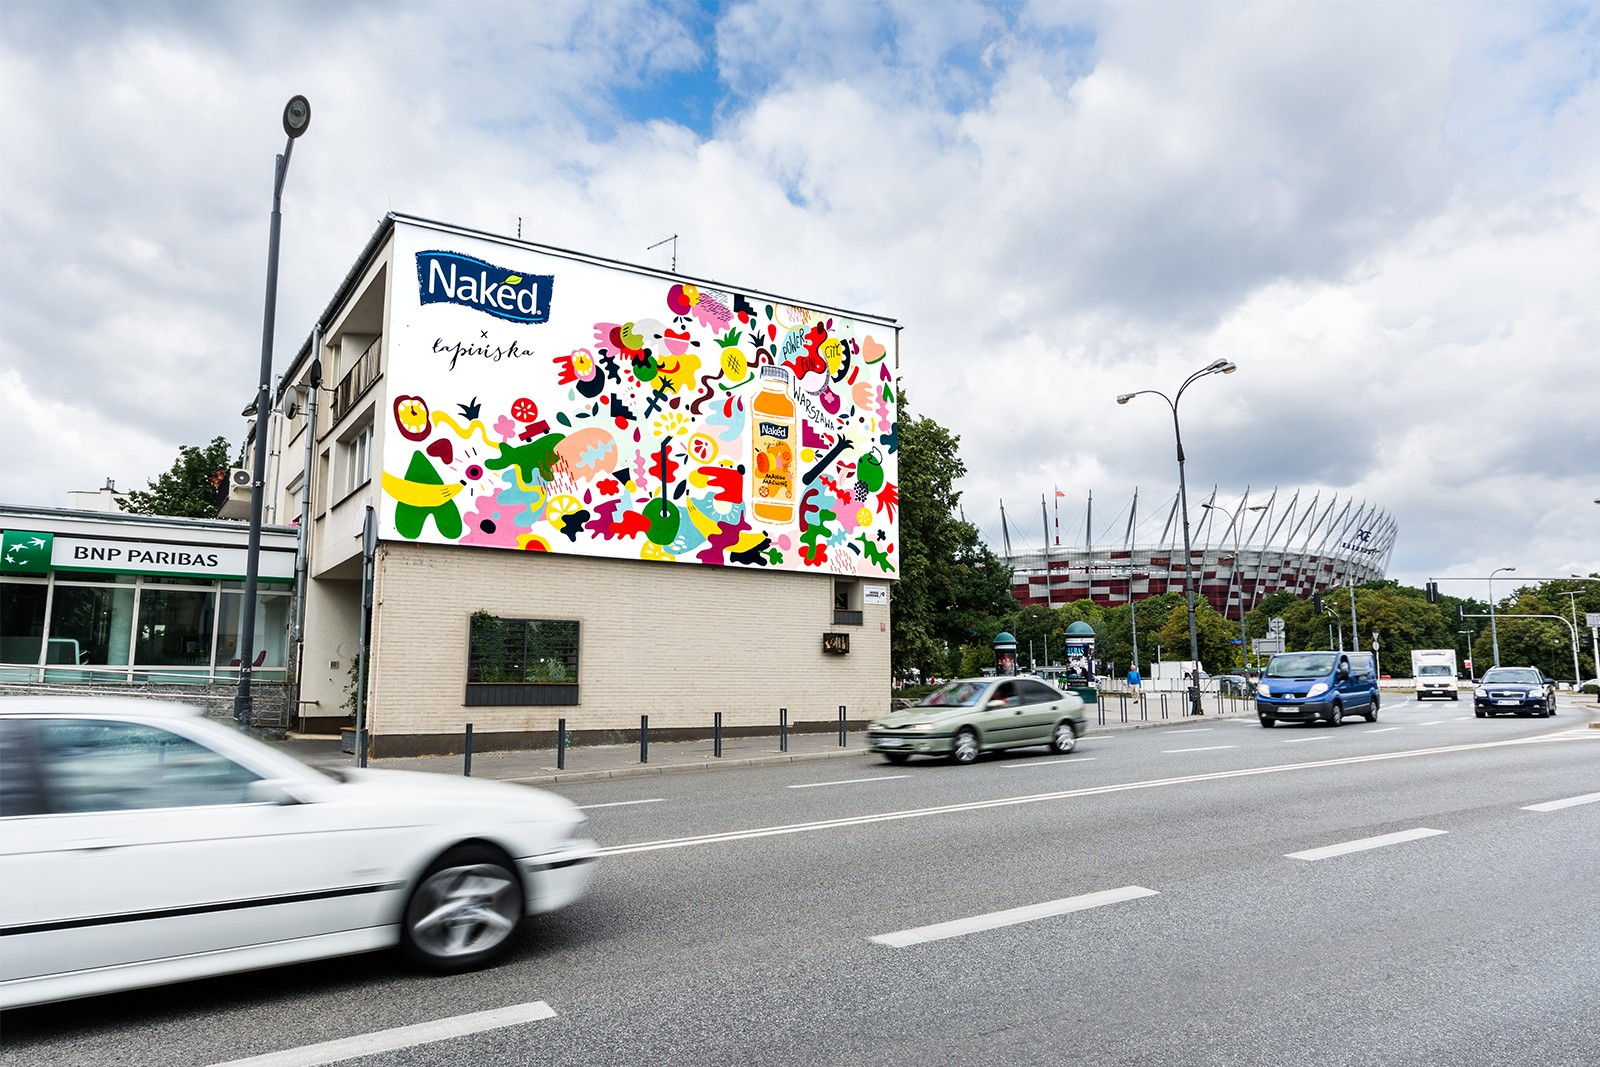 Naked's advertising mural on Francuska street in Warsaw | #PowerFullCity | Portfolio